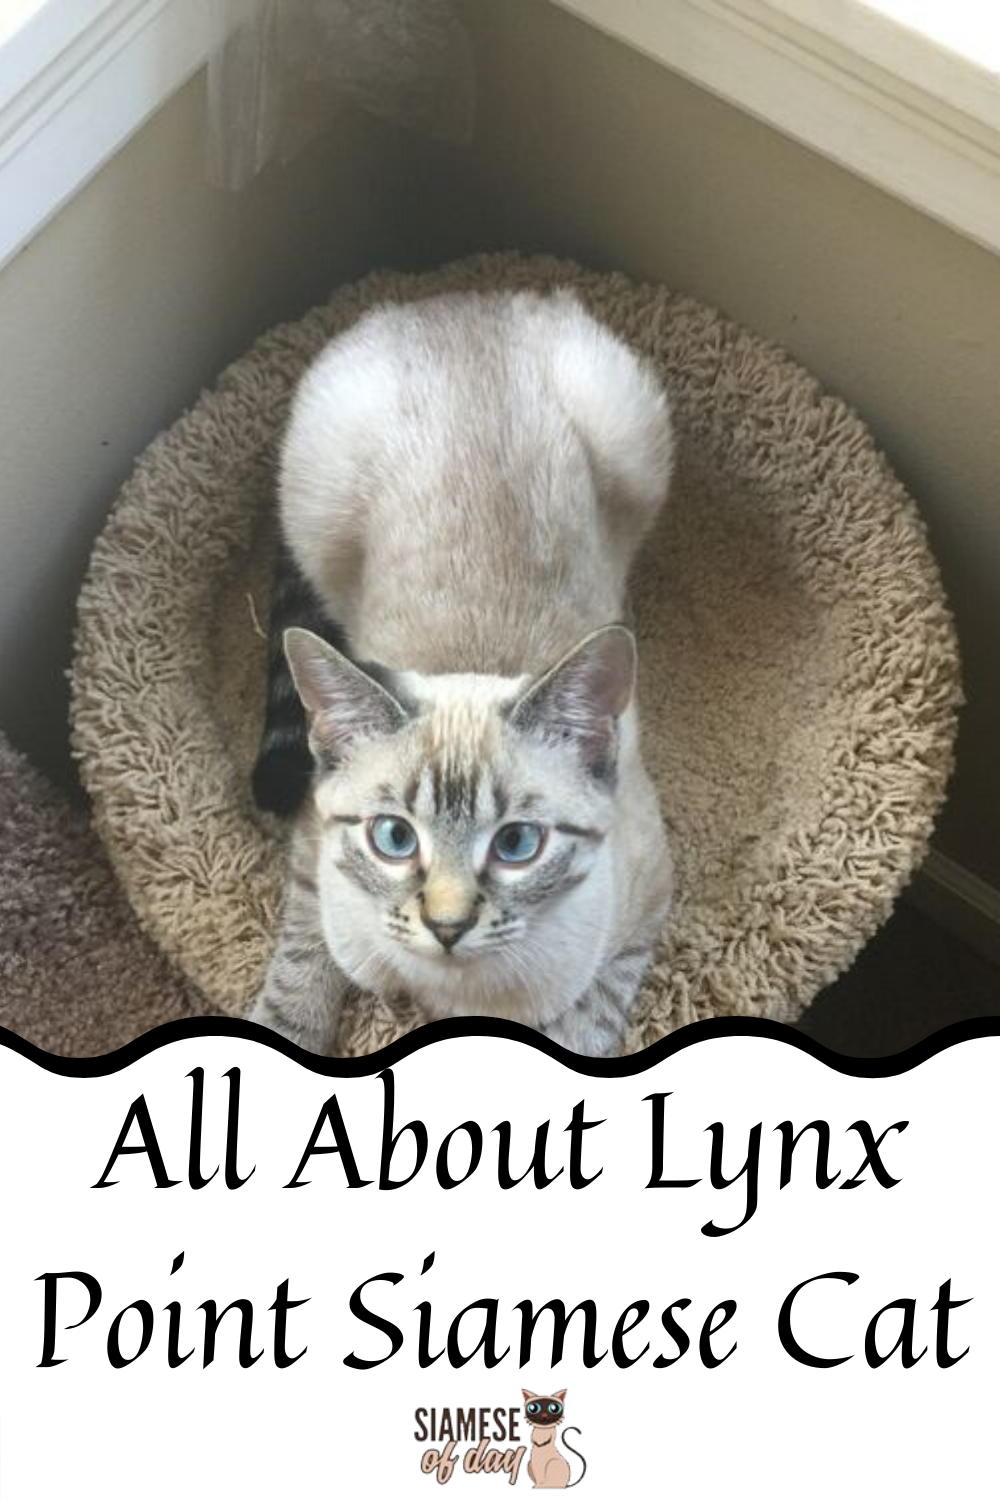 All About The Lynx Point Siamese Cats Siamese Of Day In 2020 Siamese Cats Siamese Kittens Cats